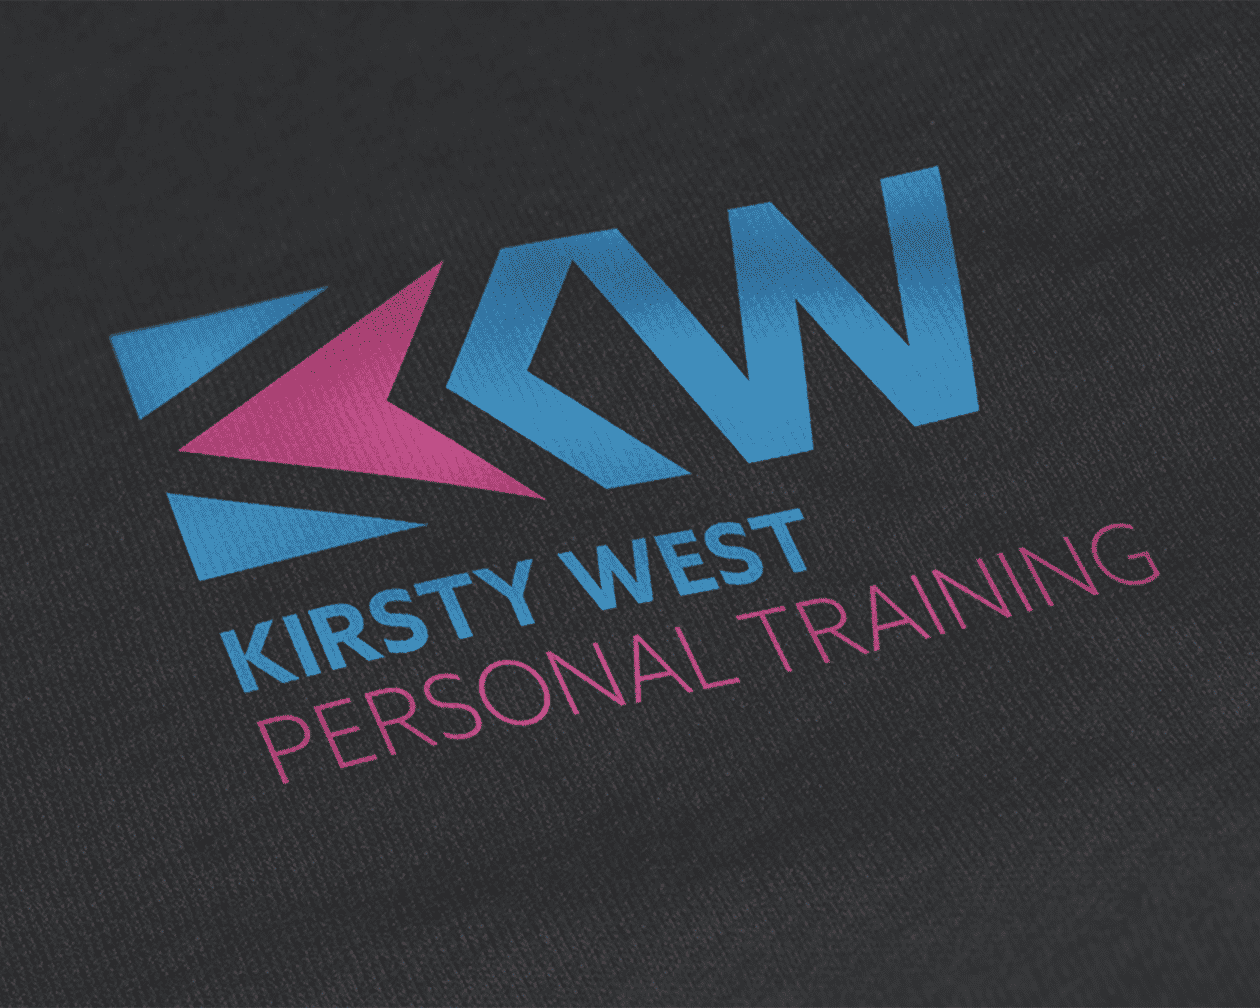 Kirsty West Logo on Cloth